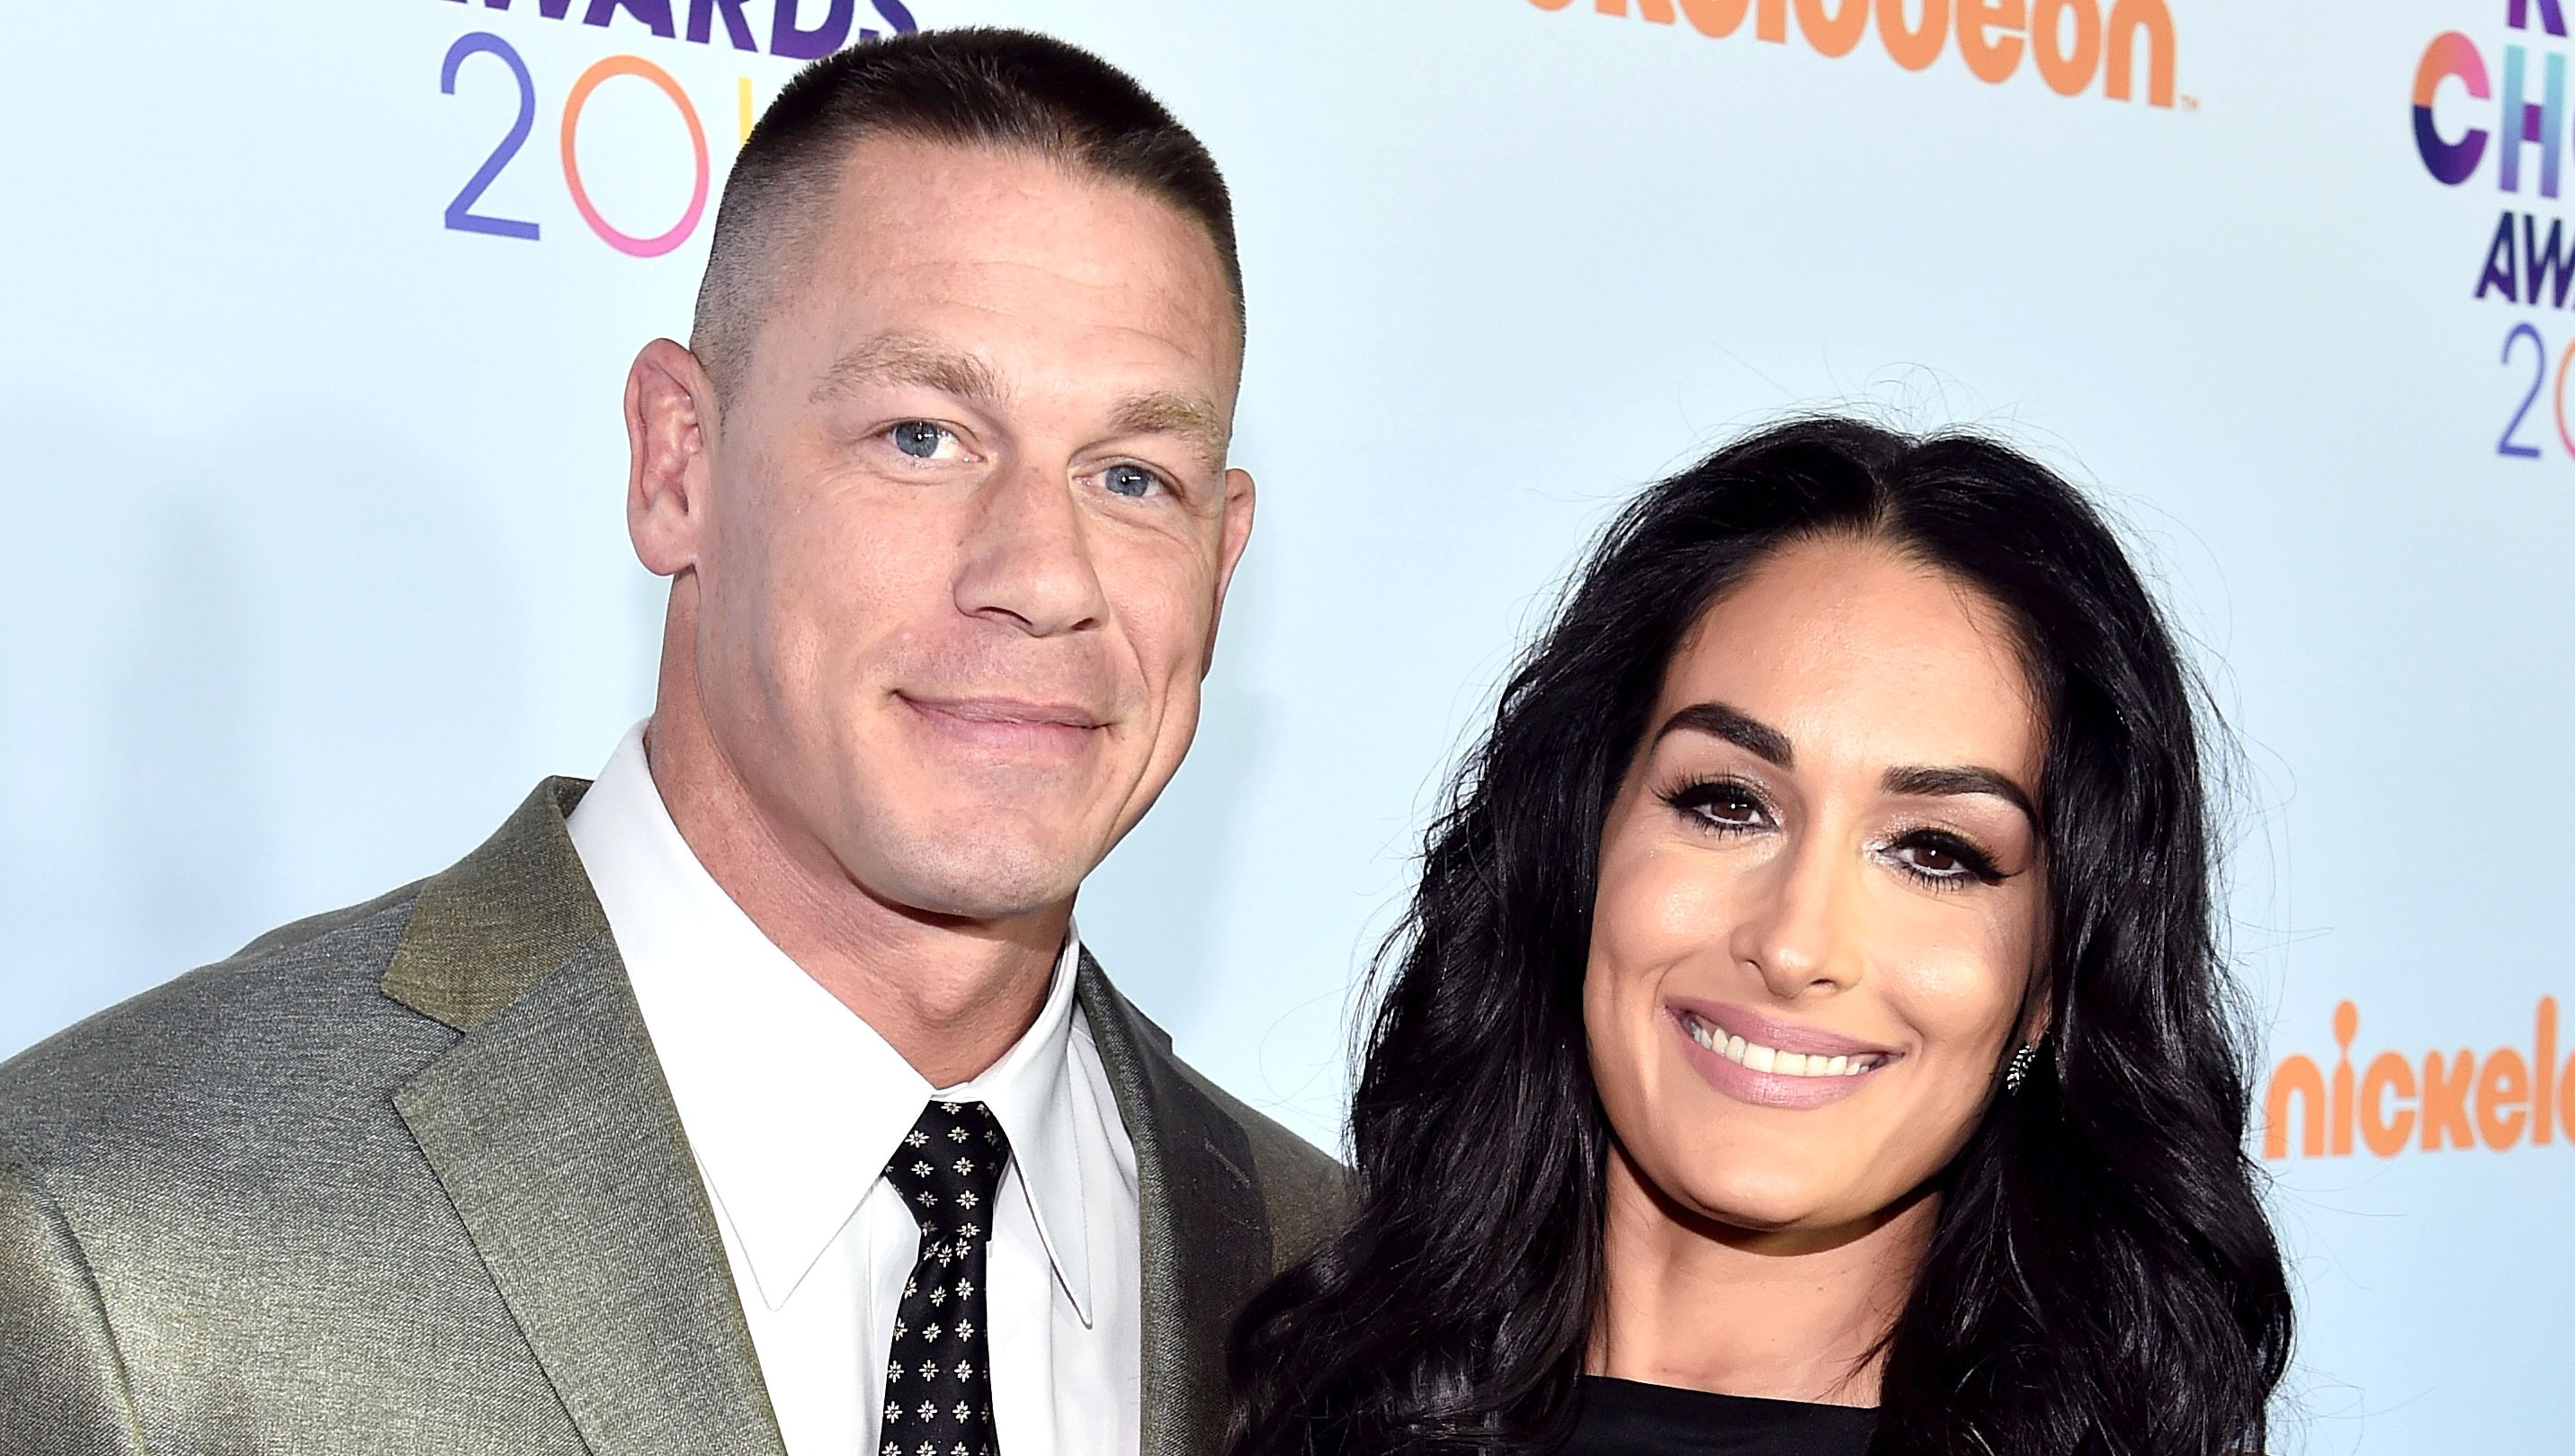 Nikki Bella on Seeing John Cena Move on With Another Woman: 'It's Gonna Kill Me'